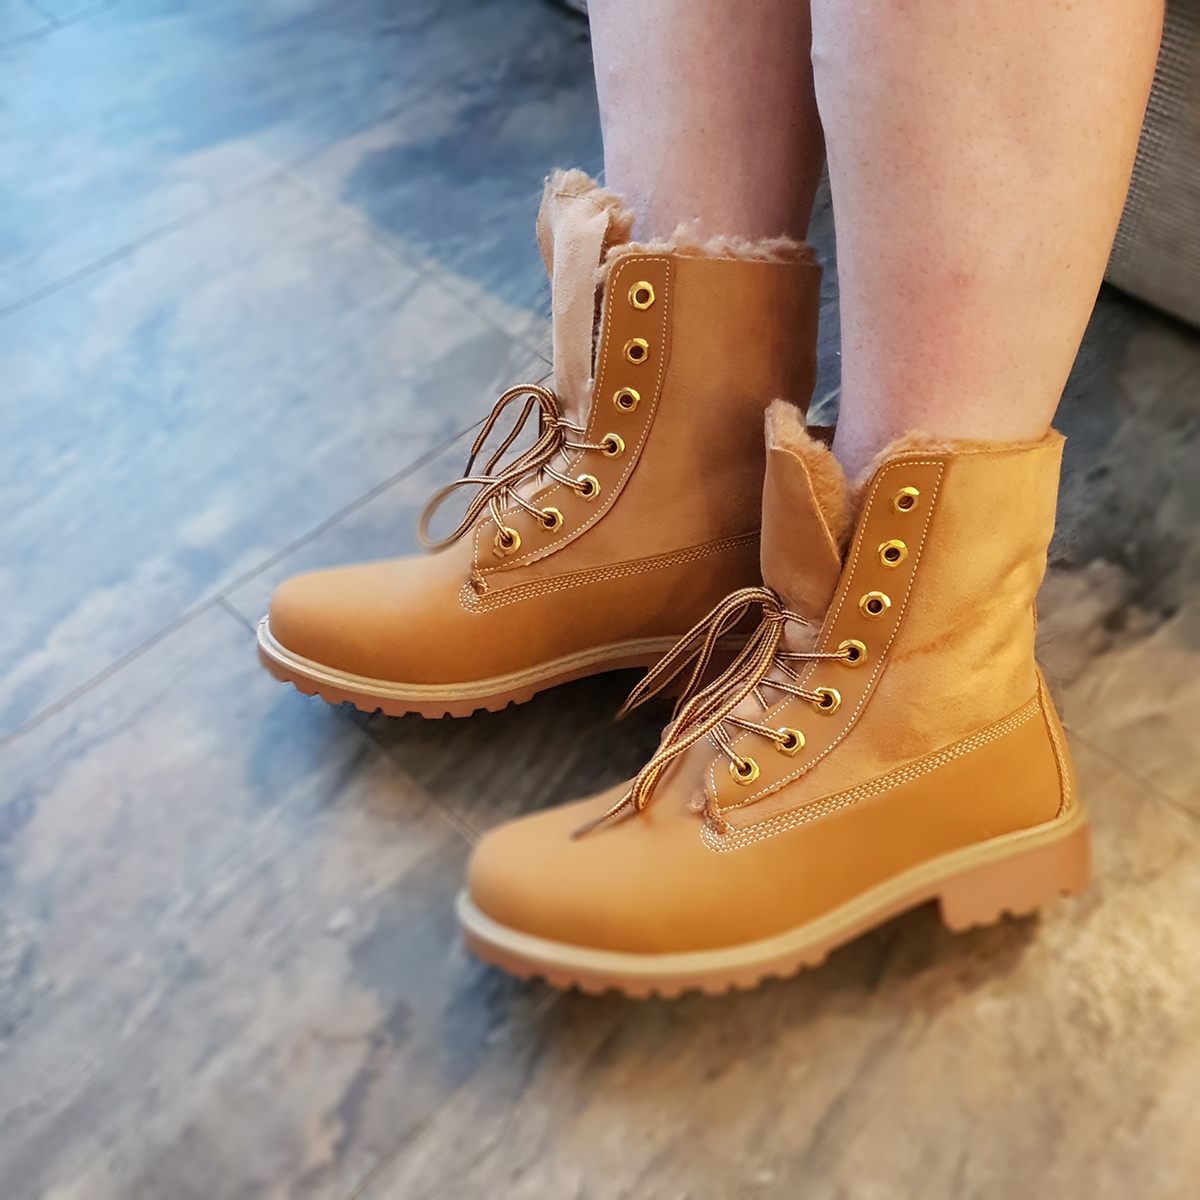 Womens Hiking Boots, Tall Boots & Ankle Boots |